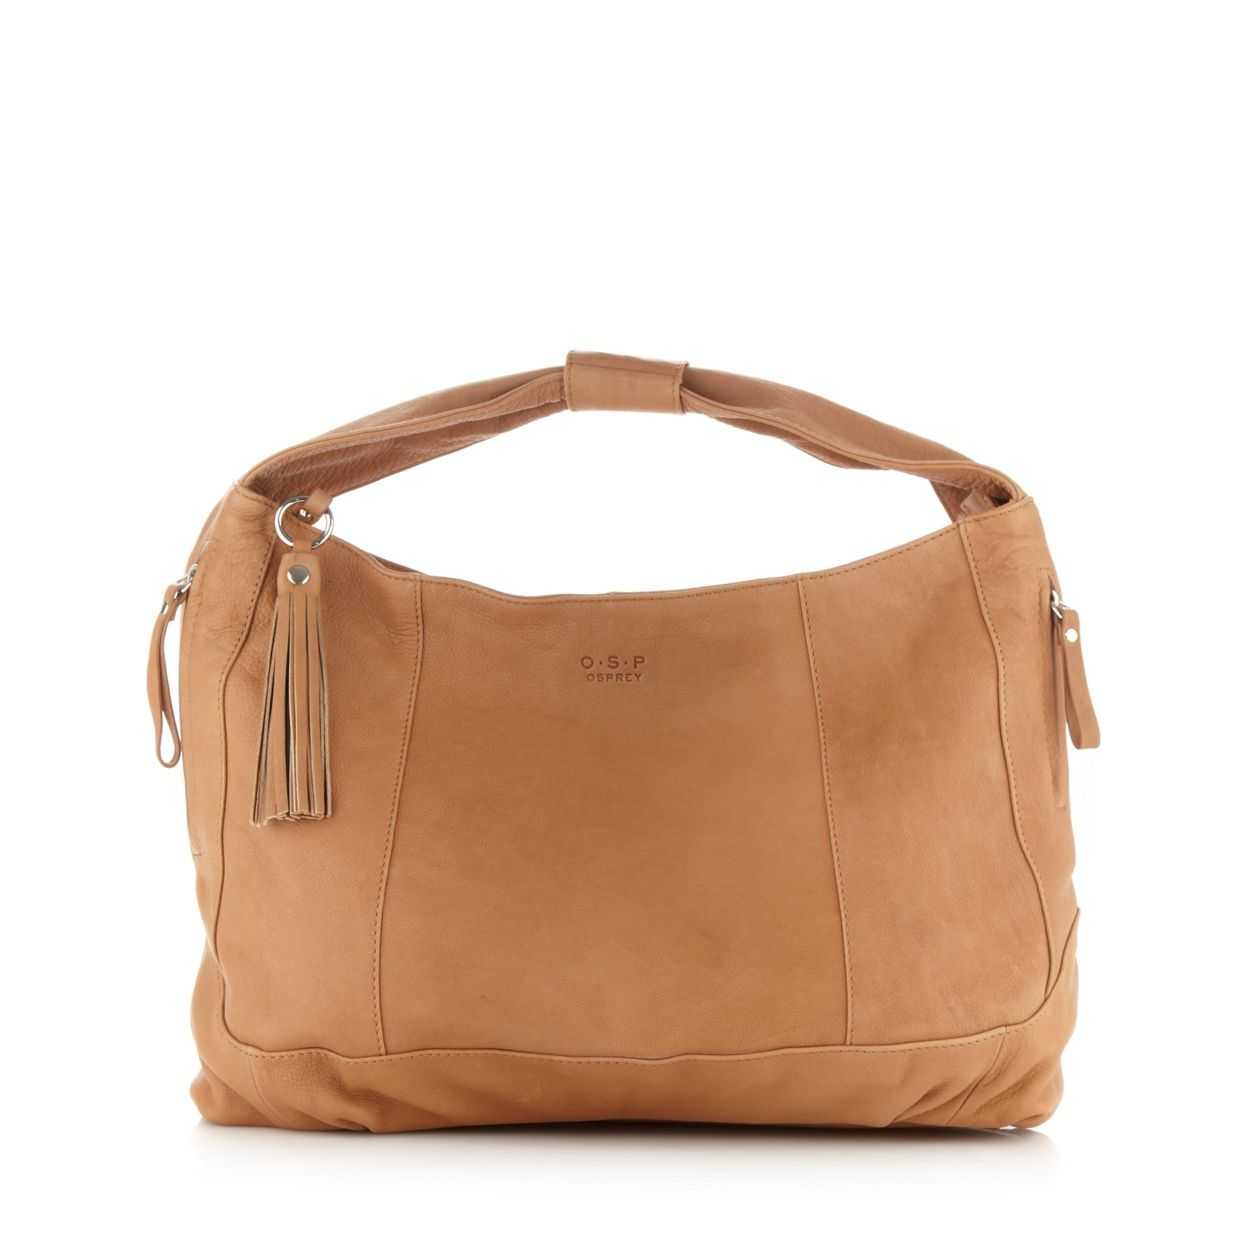 O.S.P OSPREY Tan large soft leather hobo bag- at Debenhams.com